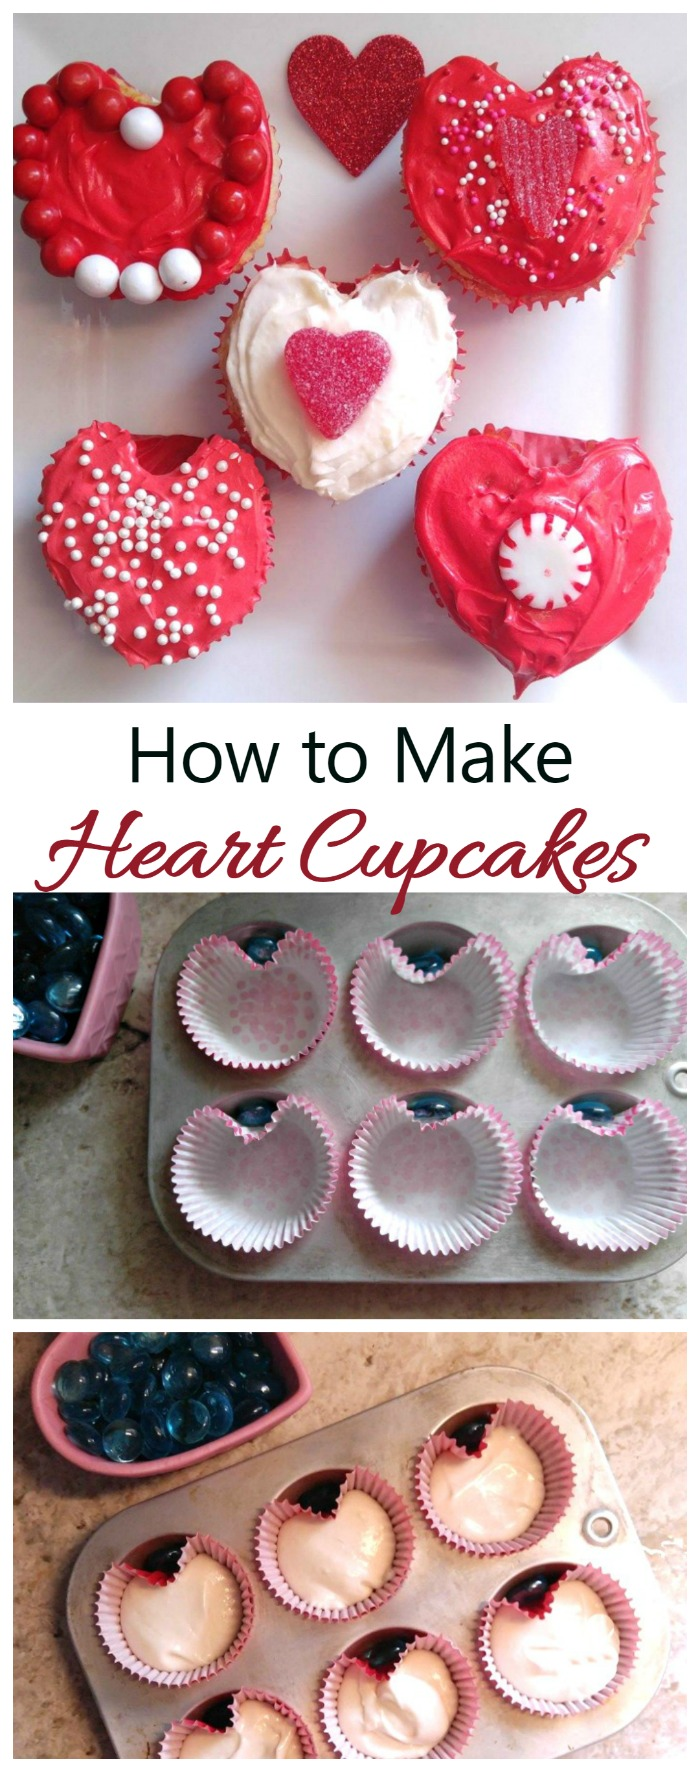 Heart Shaped cupcakes are fun for Valentine's Day. You can buy special cupcake liners or use marbles to make your own.